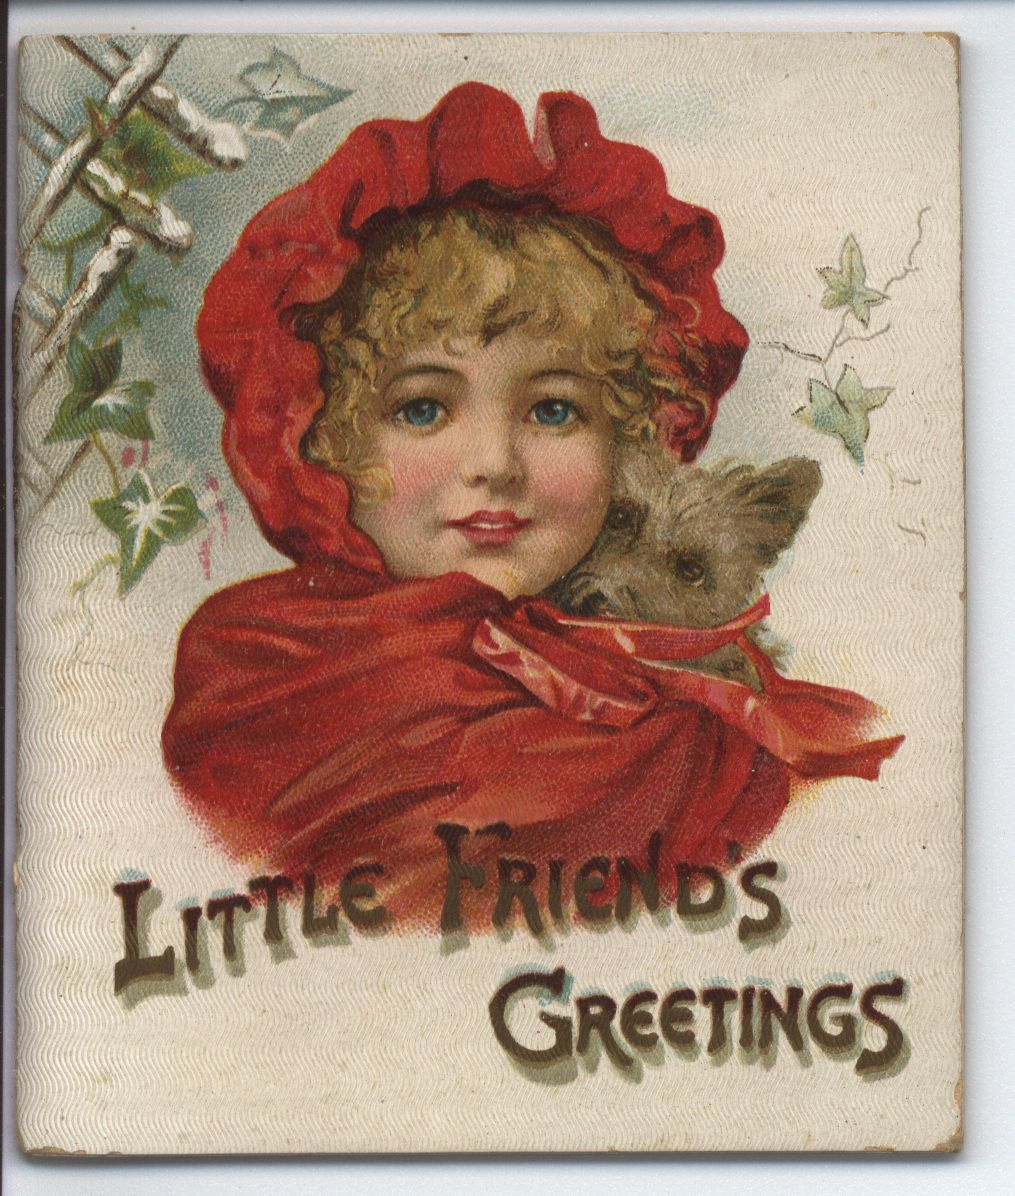 Little Friends Greetings 1 My Favorite Christmas And New Year